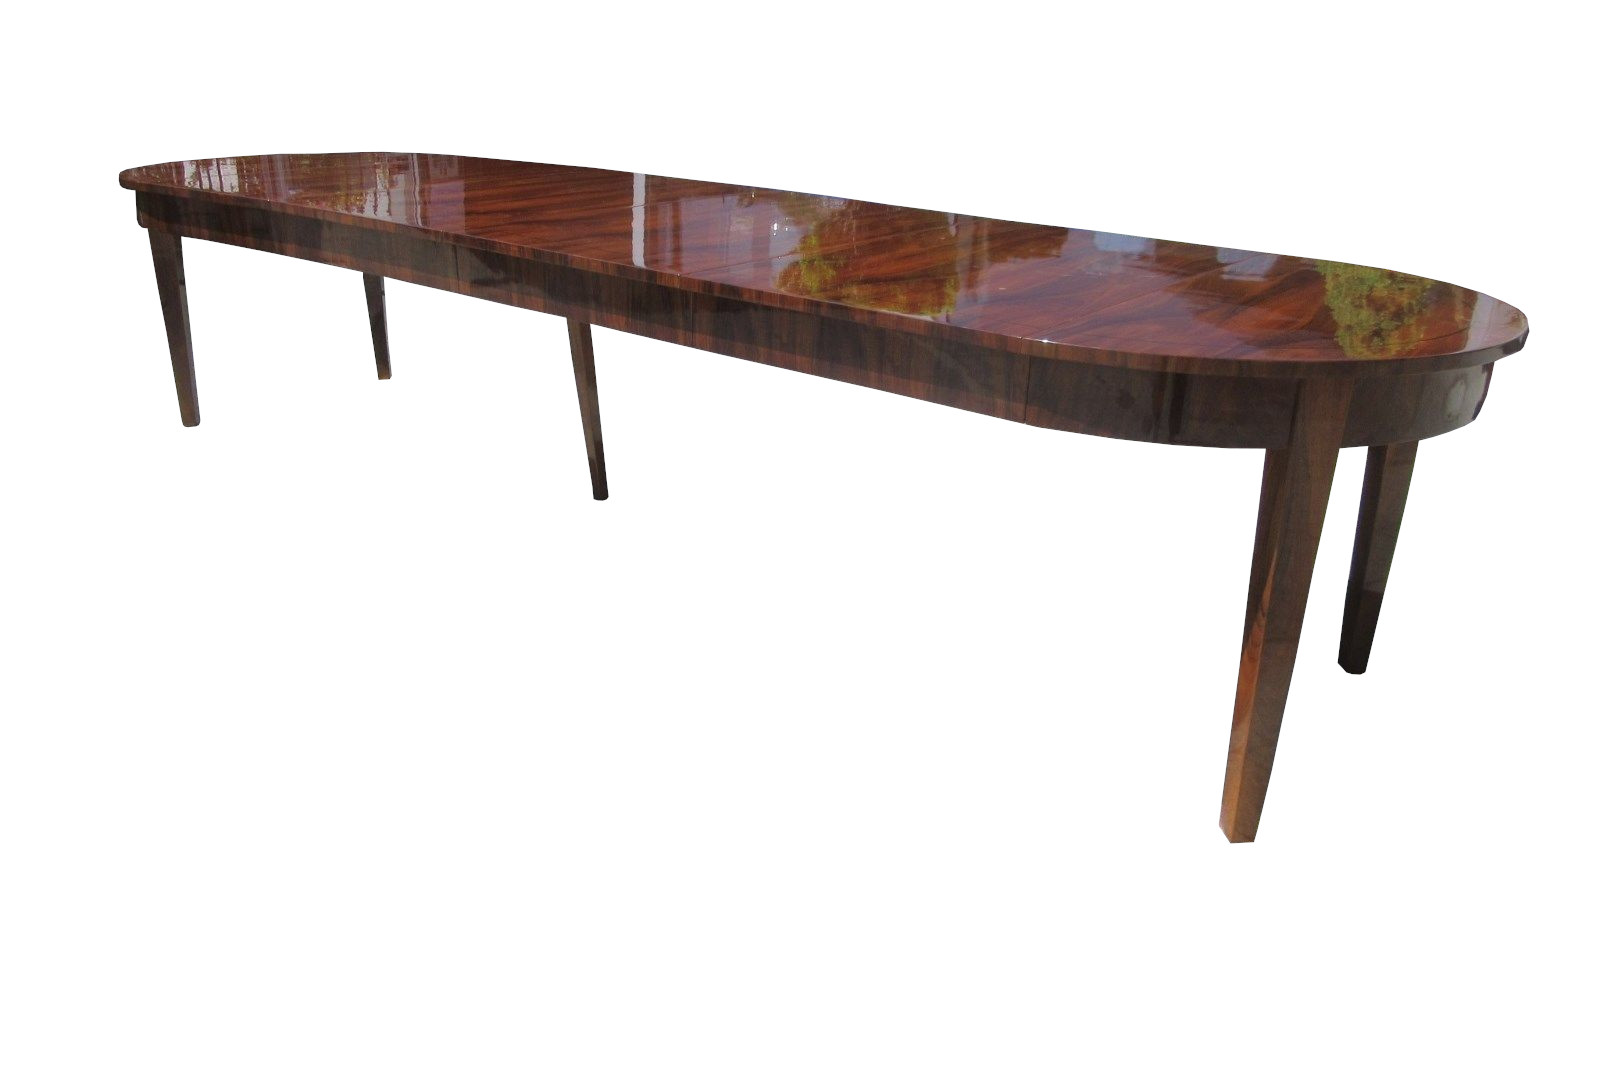 Large Biedermeier Style Dining Table or Conference Table Walnut Wood  Veneered